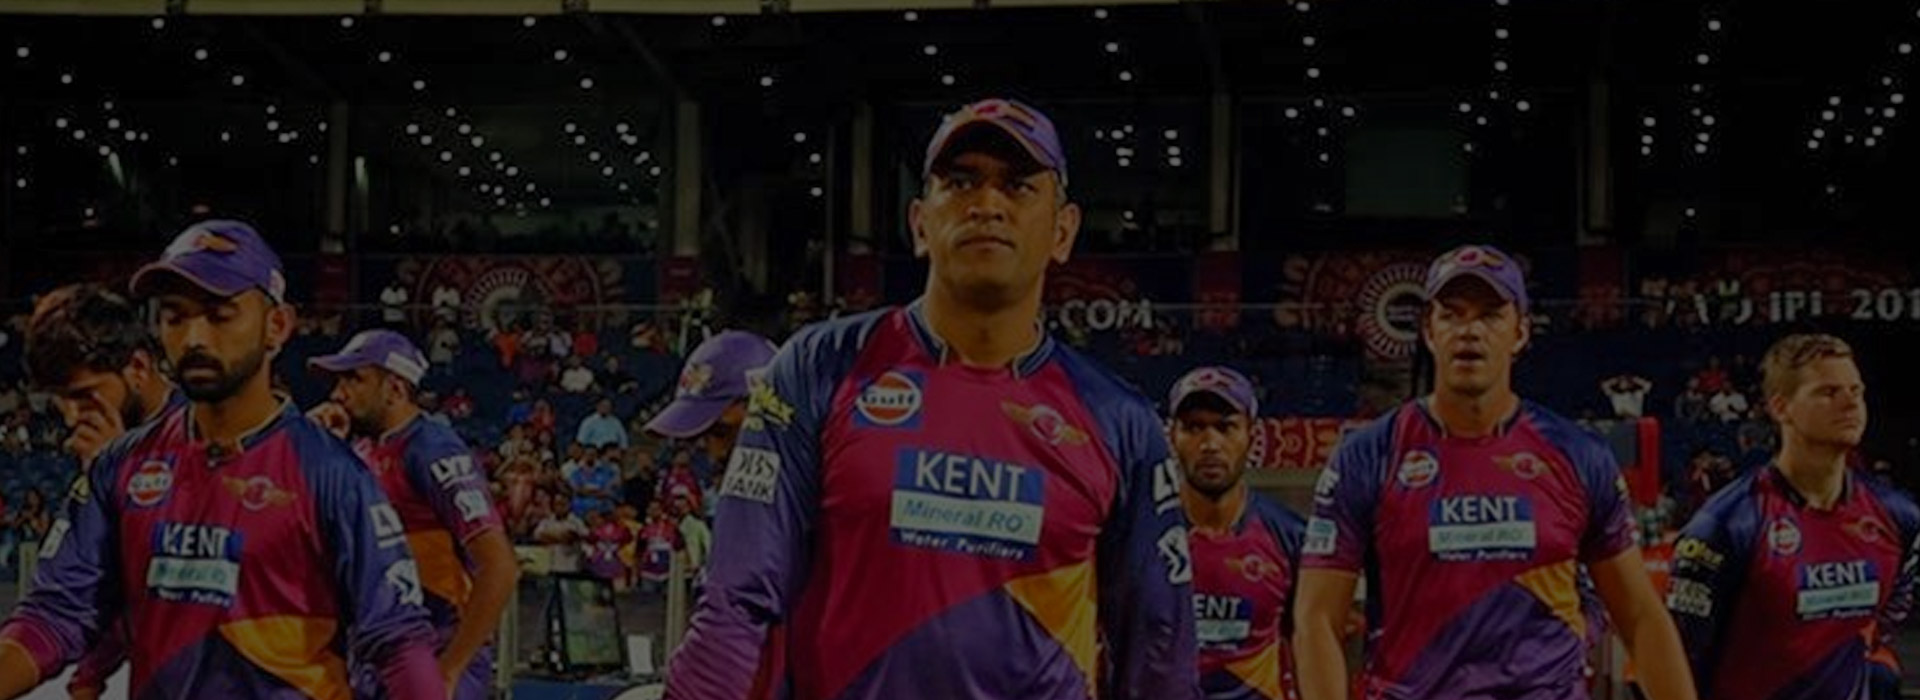 The Group moved into the popular Indian Premier League (IPL) with the Pune-based cricket team Rising Pune Supergiant.